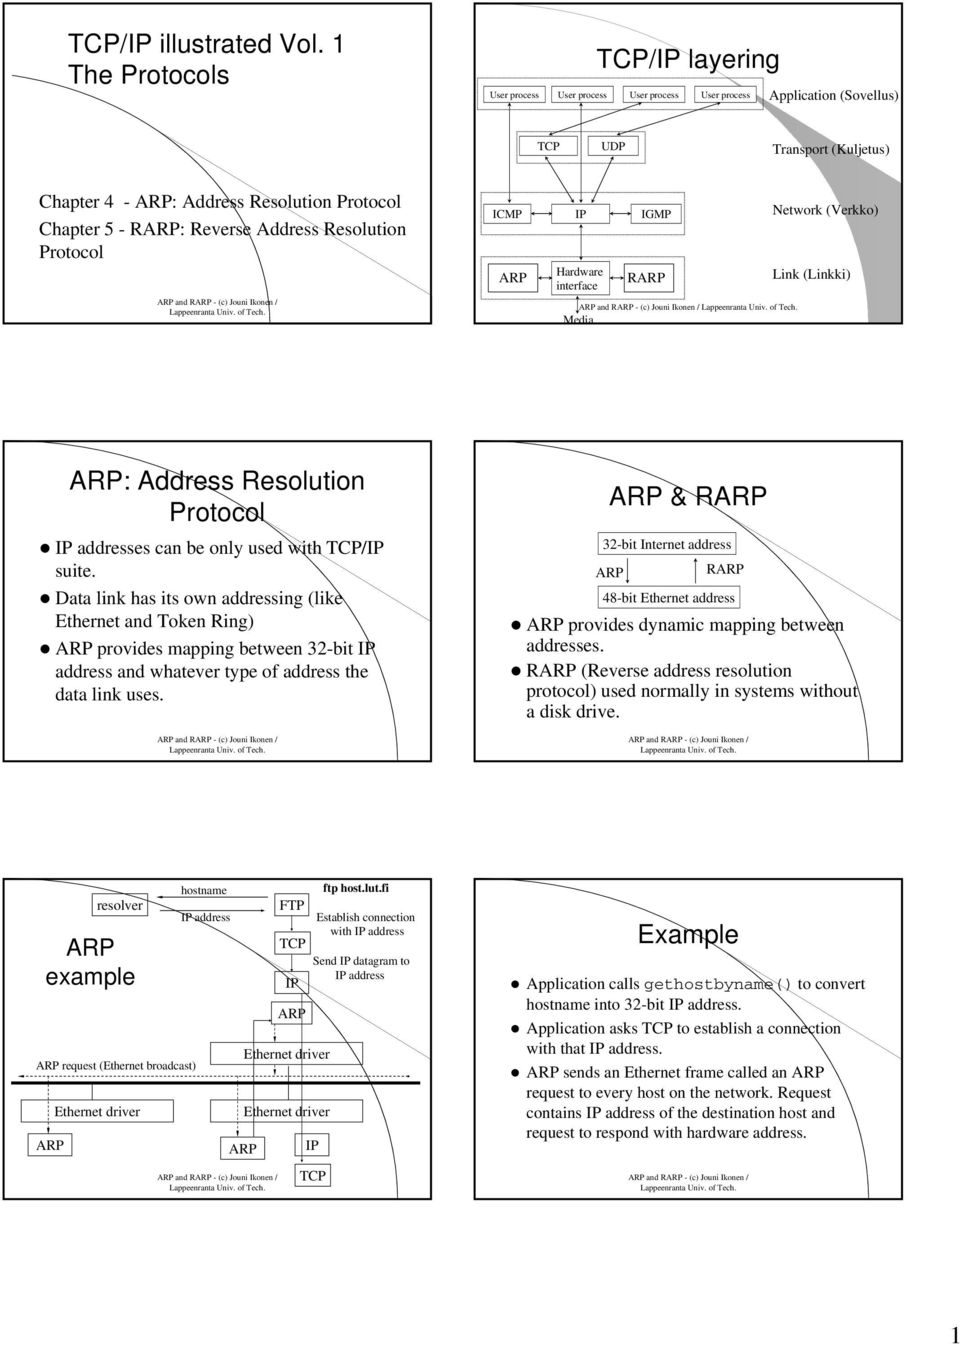 Reverse Address Resolution Protocol ARP and RARP - (c) Jouni Ikonen / ICMP ARP IP Hardware interface IGMP RARP ARP and RARP - (c) Jouni Ikonen / Media Network (Verkko) Link (Linkki) ARP: Address